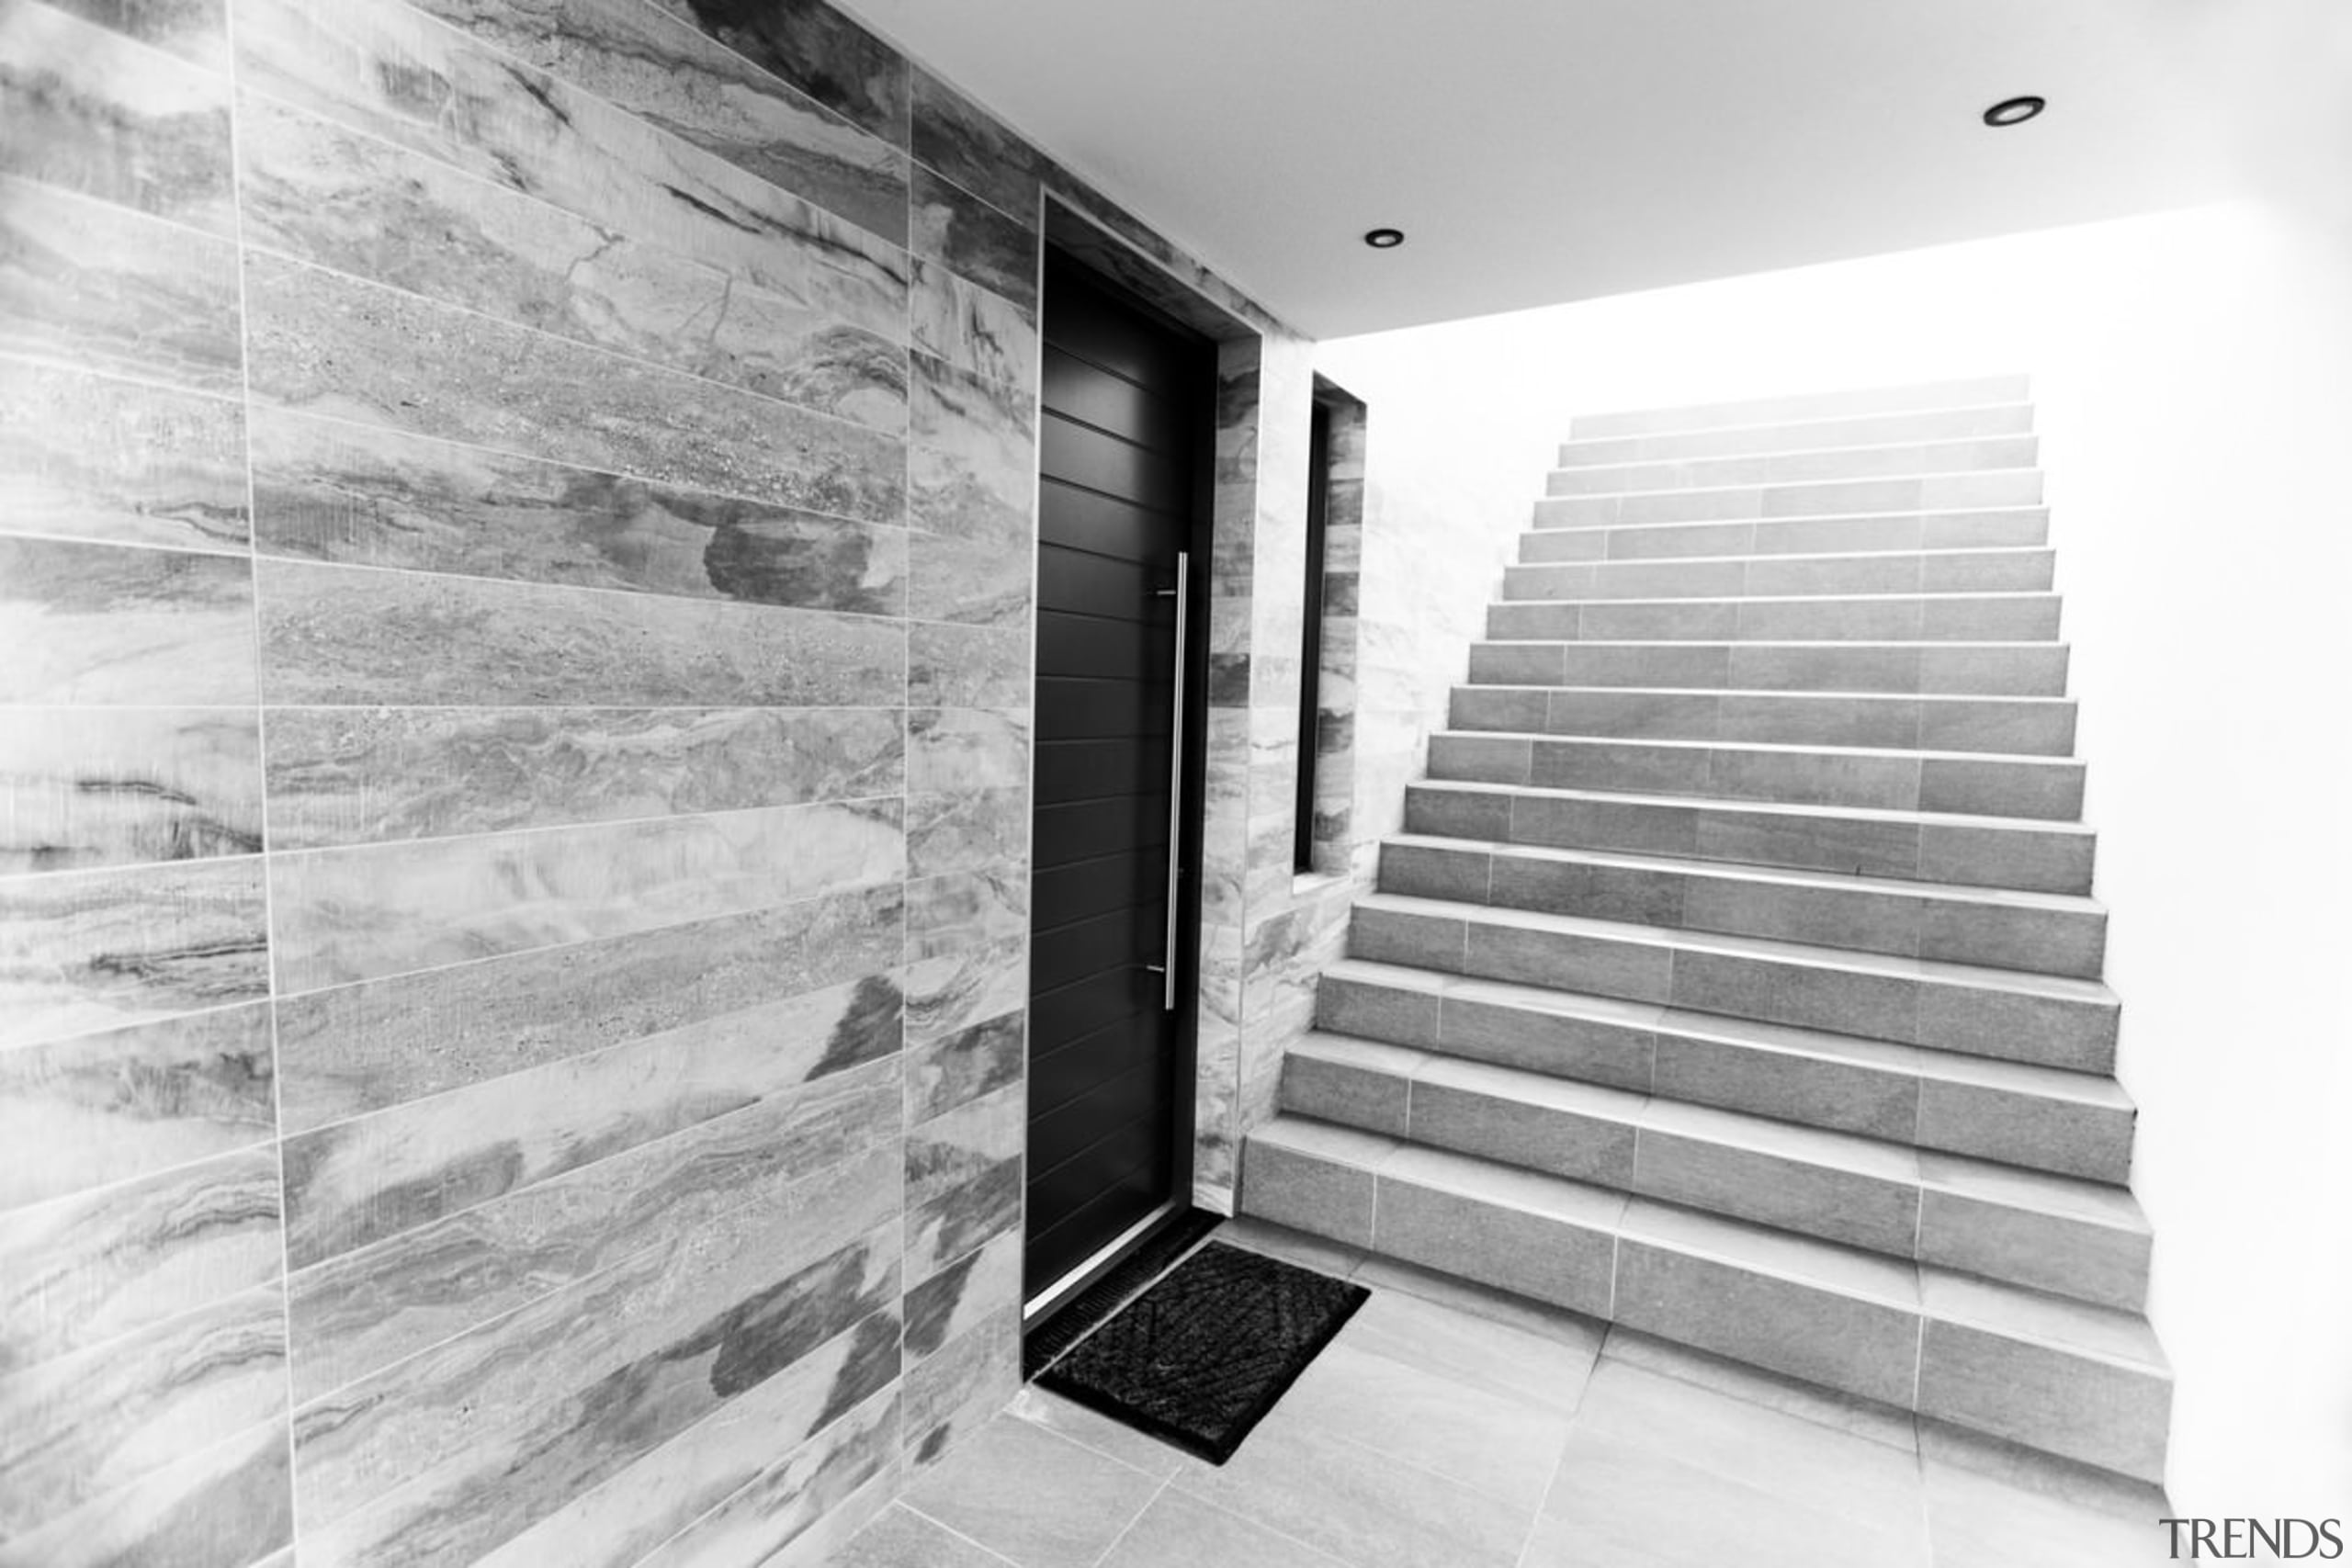 Architect: 2020 ArchitectsPhotography by Reinis Babrovskis architecture, black and white, floor, interior design, monochrome, monochrome photography, wall, white, gray